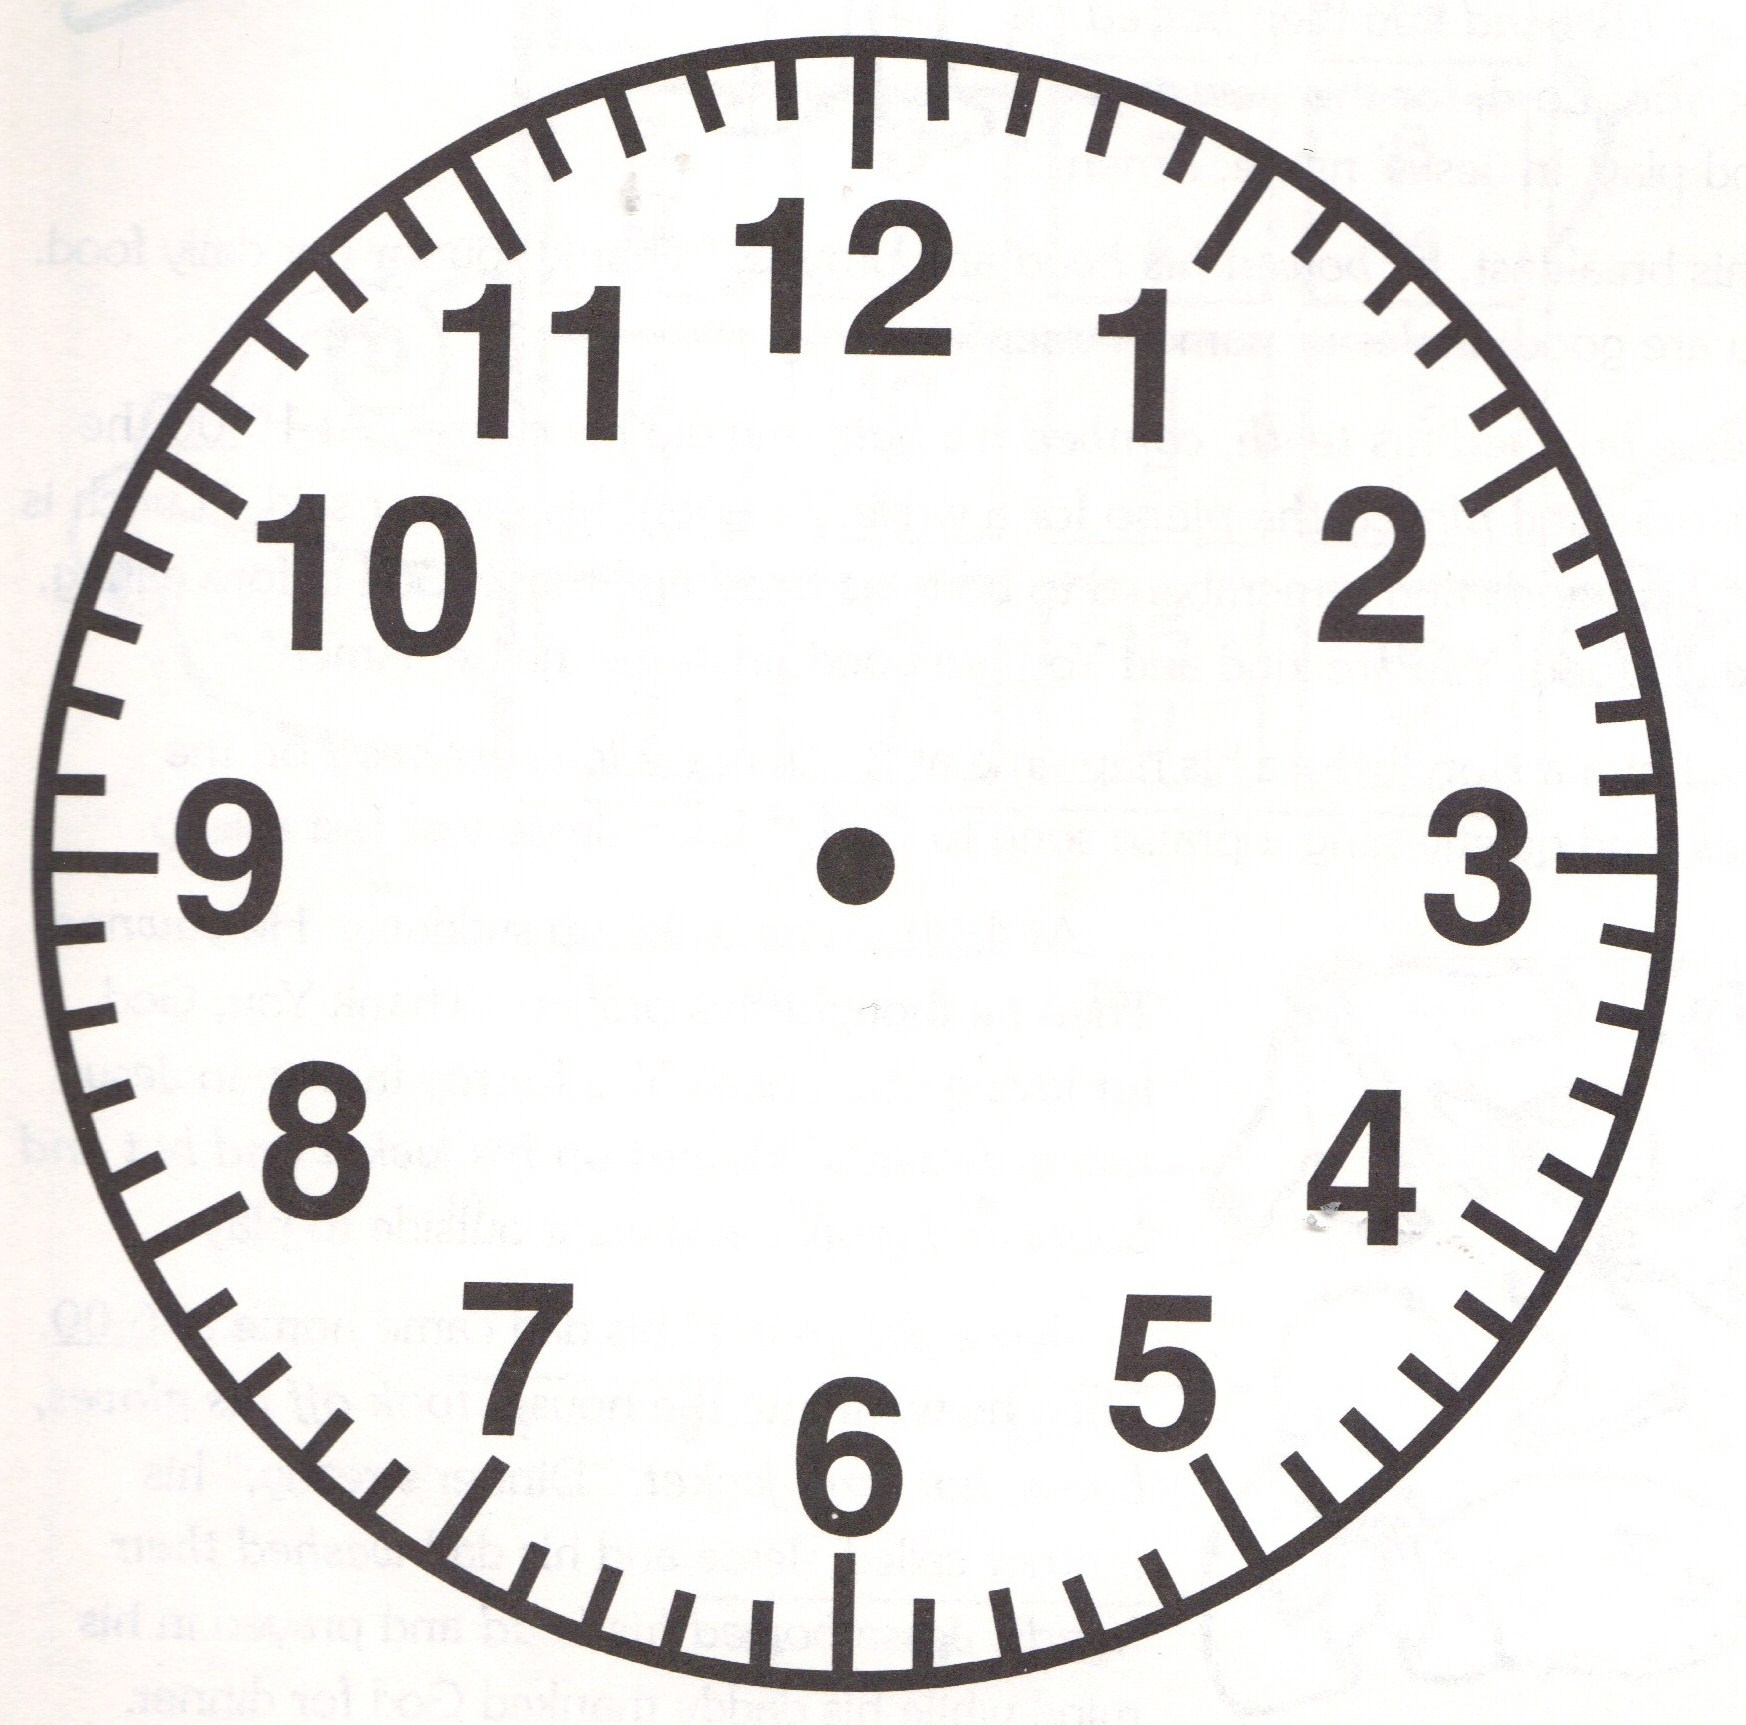 34 Printable Clock Face Without Hands Free Cliparts That You Can